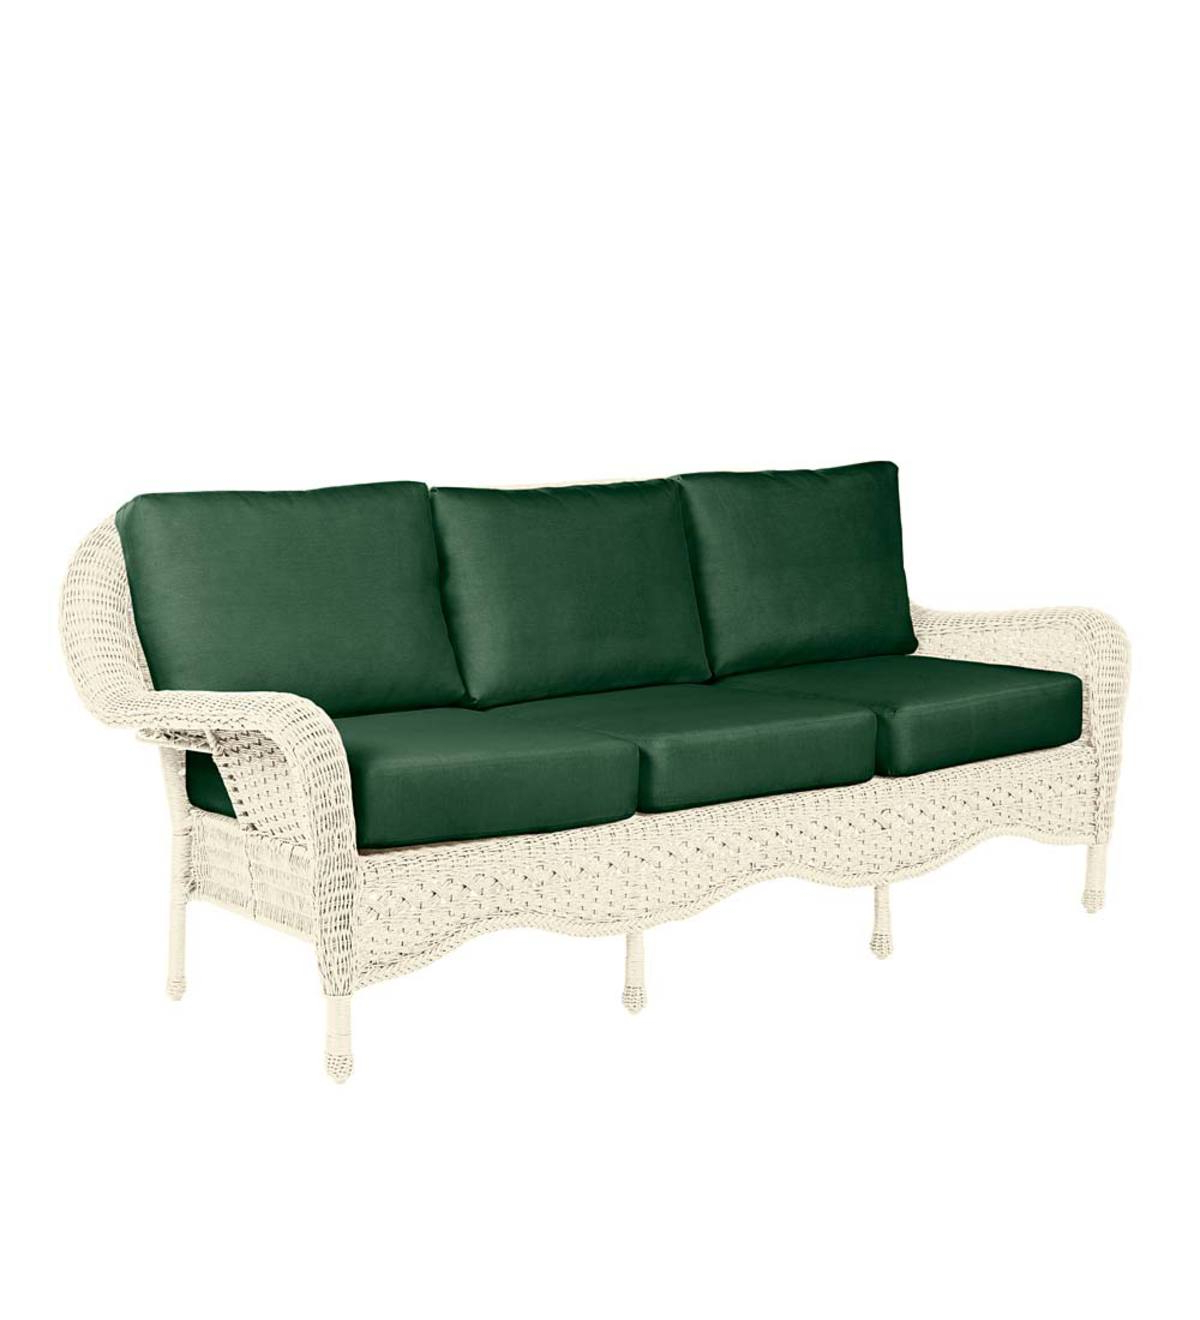 Prospect Hill Wicker Settee Benches Pertaining To 2020 Prospect Hill Outdoor Wicker Deep Seating Sofa With Cushions (View 14 of 20)